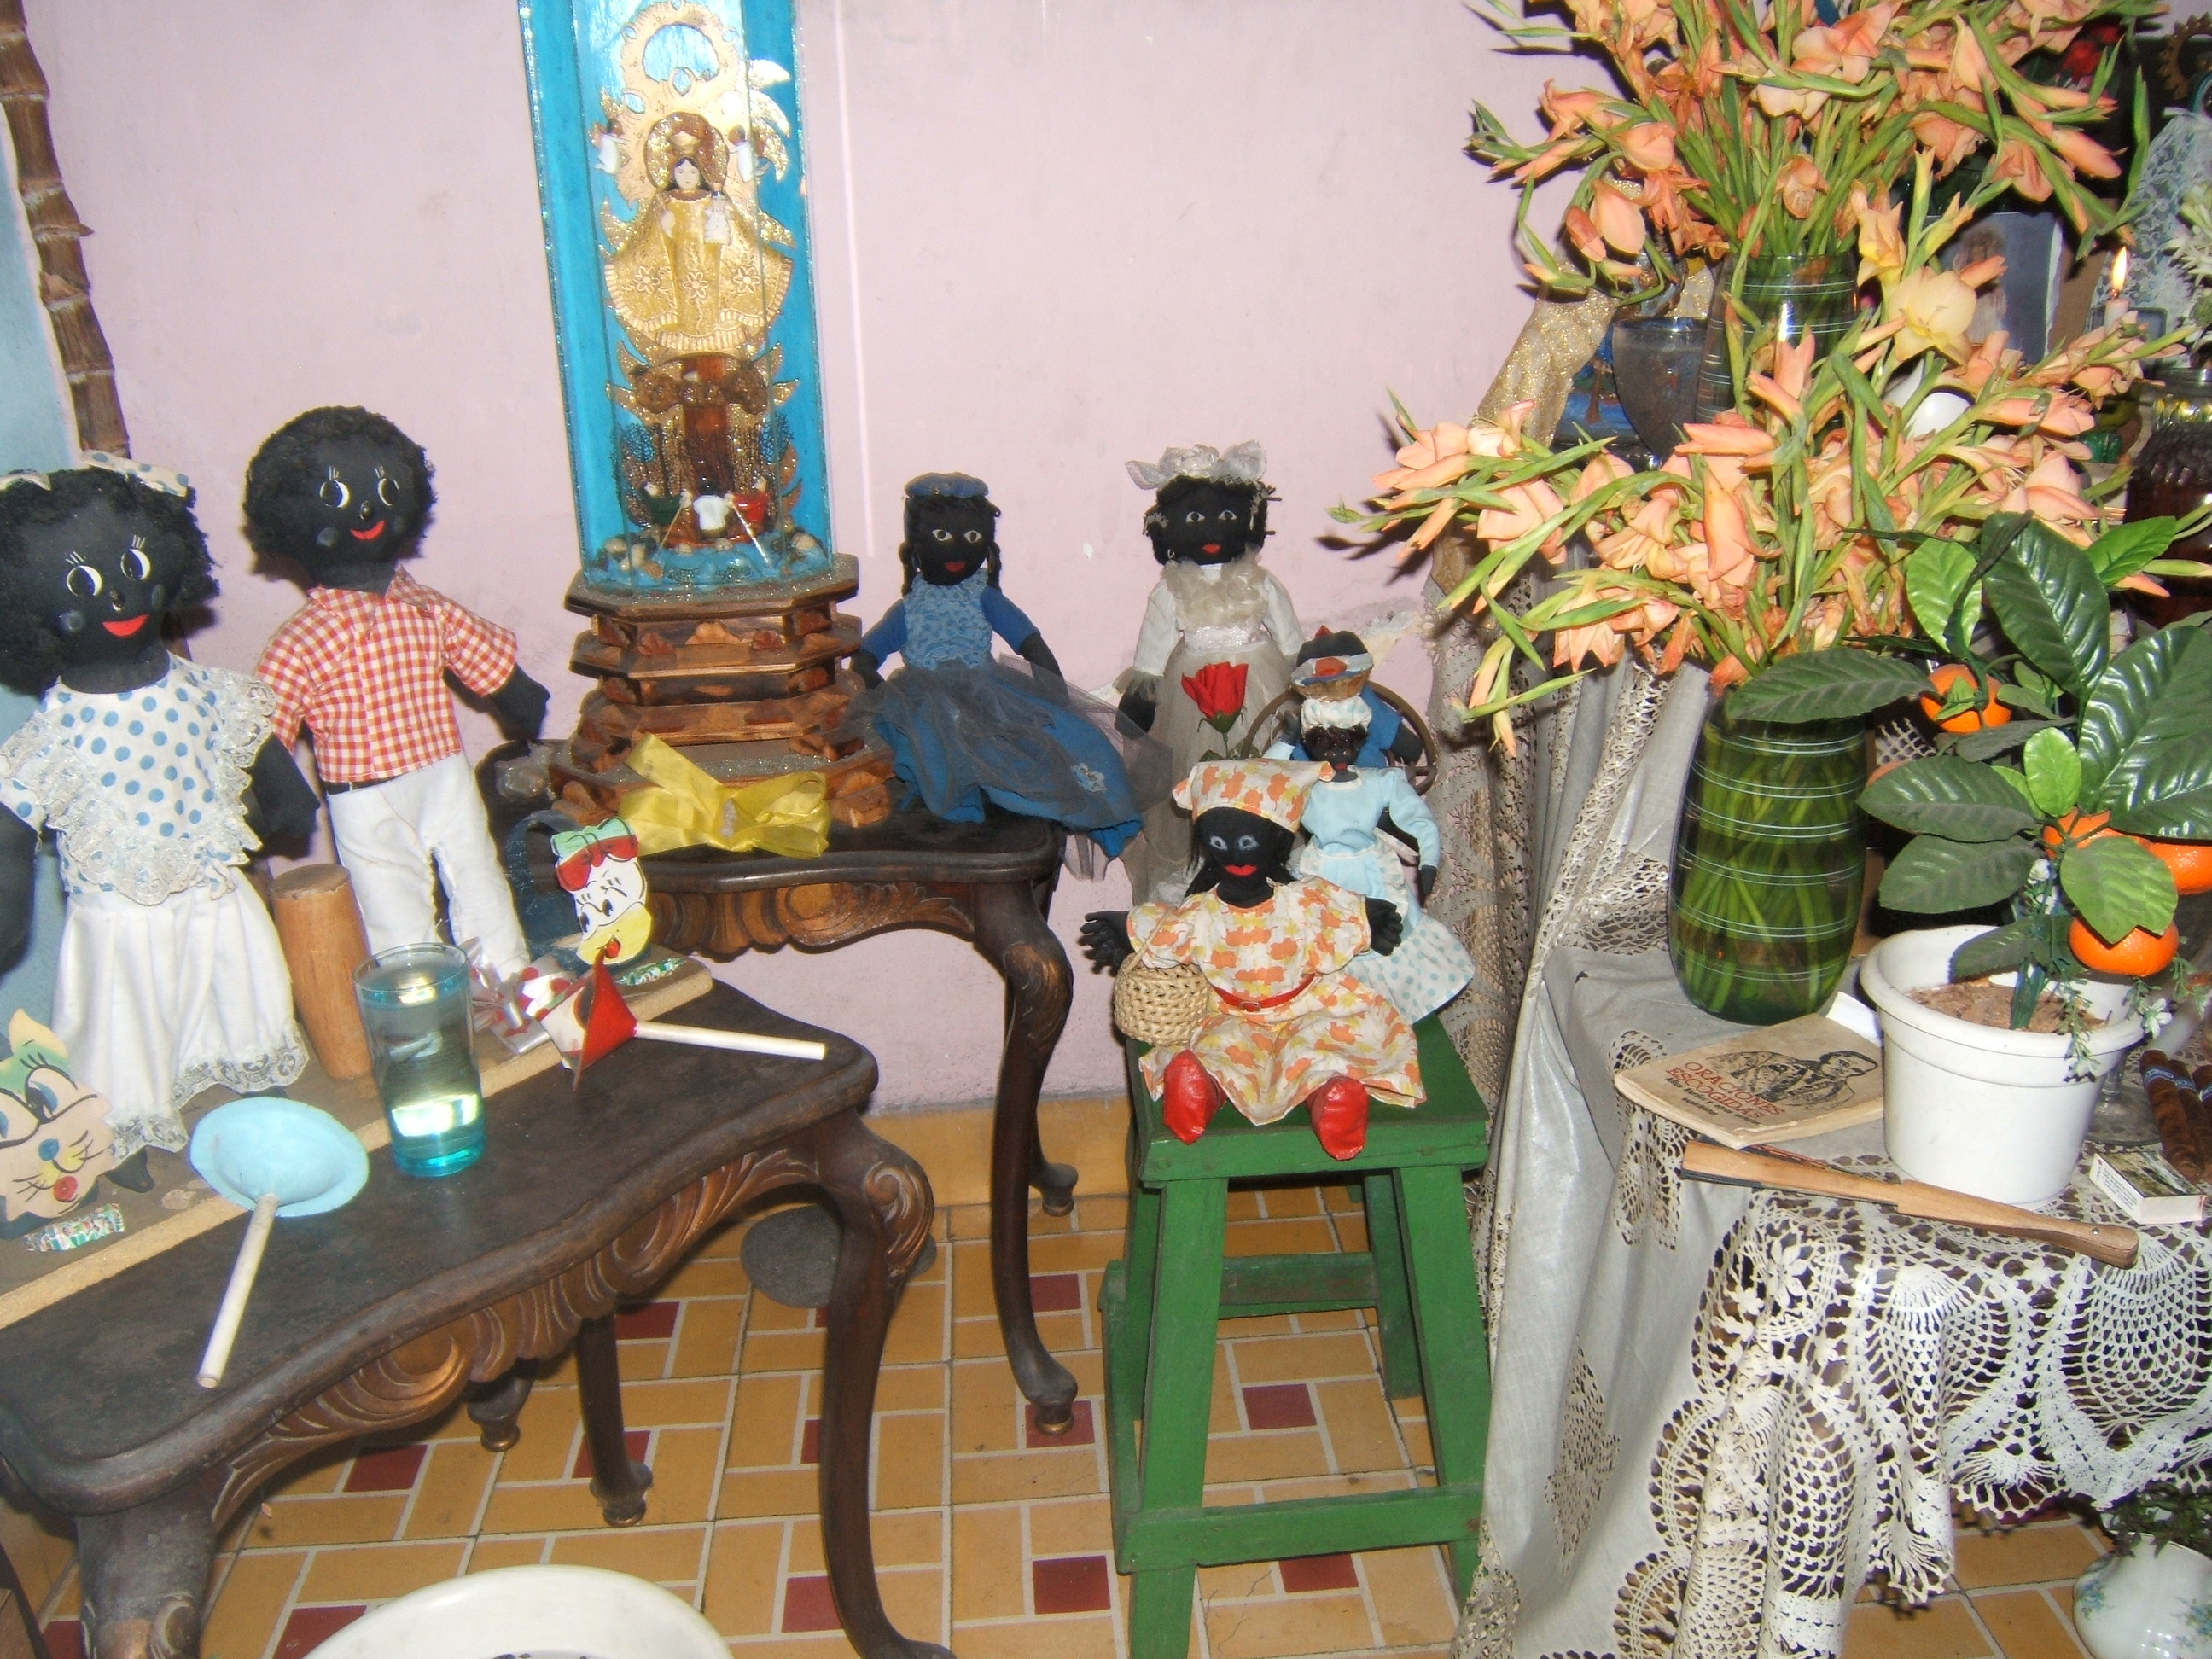 Figure 18. Side tables next to Mirta's bóveda hold dolls representing the Ibeyi or twin orichas (far left), an encased statuette of the Virgin of Caridad del Cobre against a blue background, and dolls representing African spirits, in a family grouping, Santiago de Cuba, August 2008. Photograph by author.